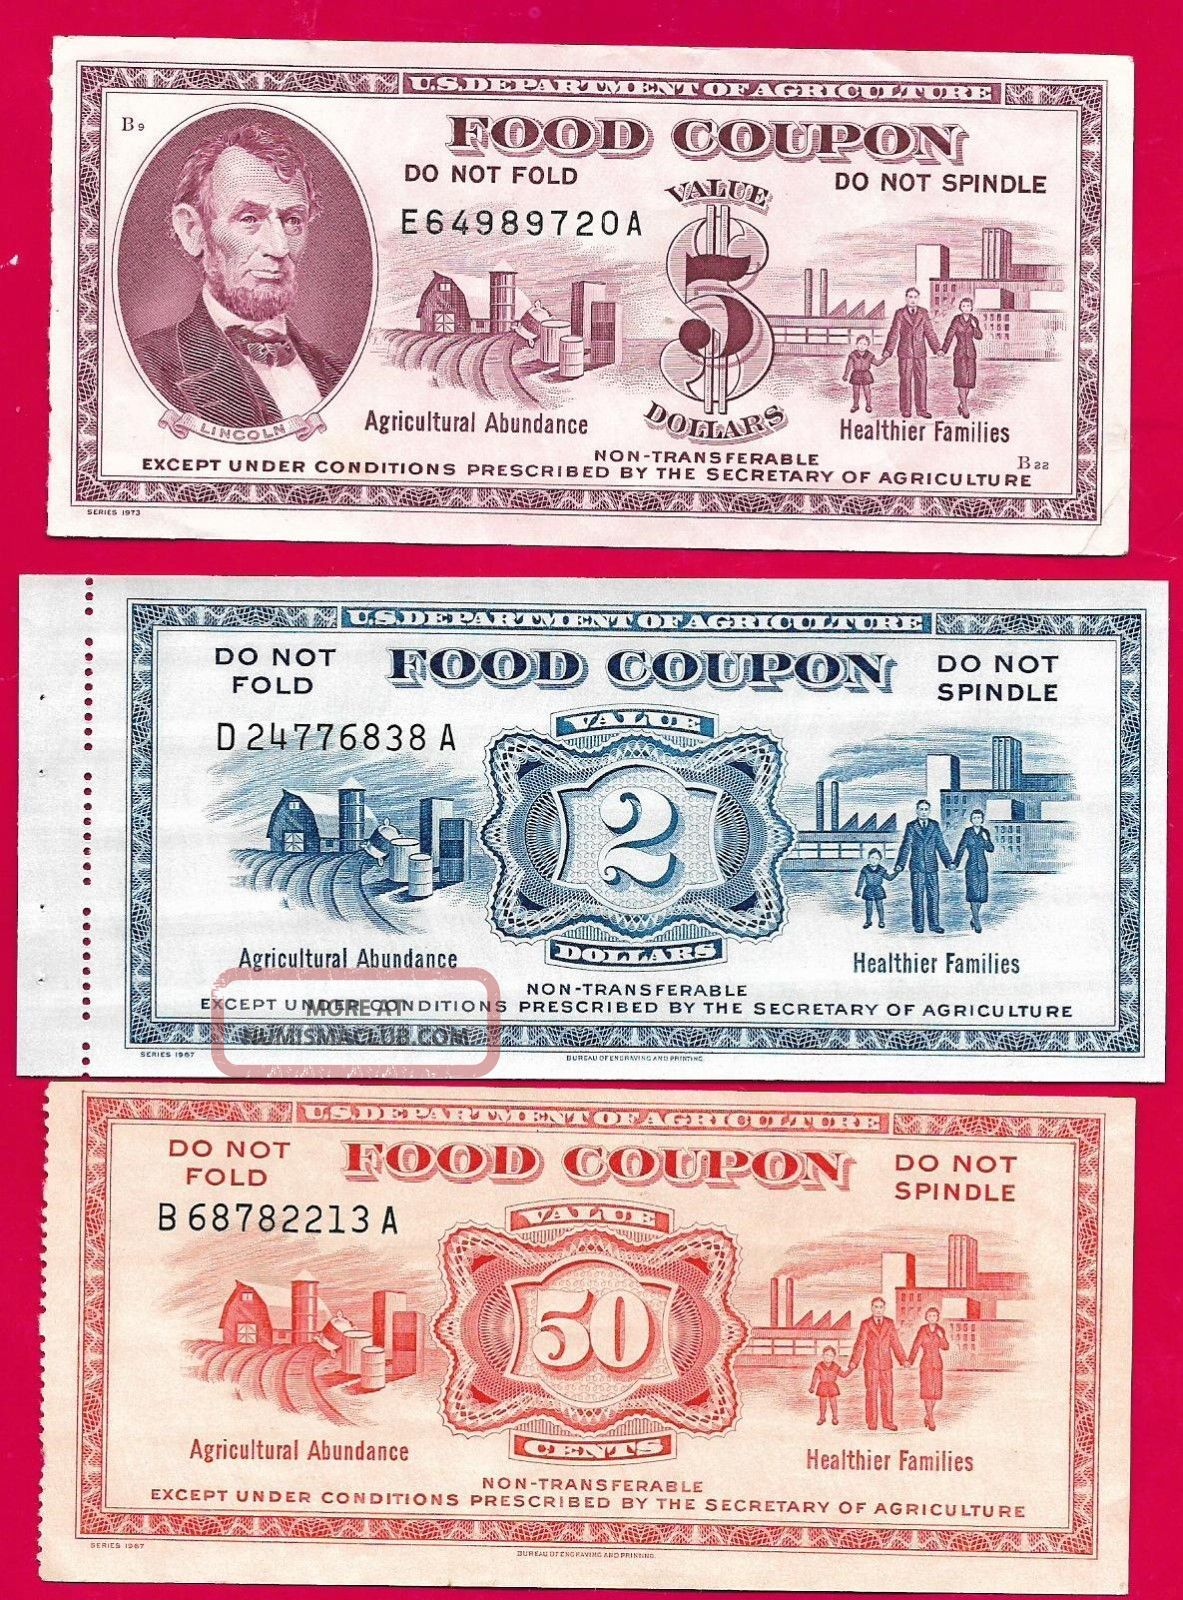 Food Stamp Coupons $0.  50 $2.  00 $5.  00 Usda Series 1967 1967 1973 Paper Money: US photo